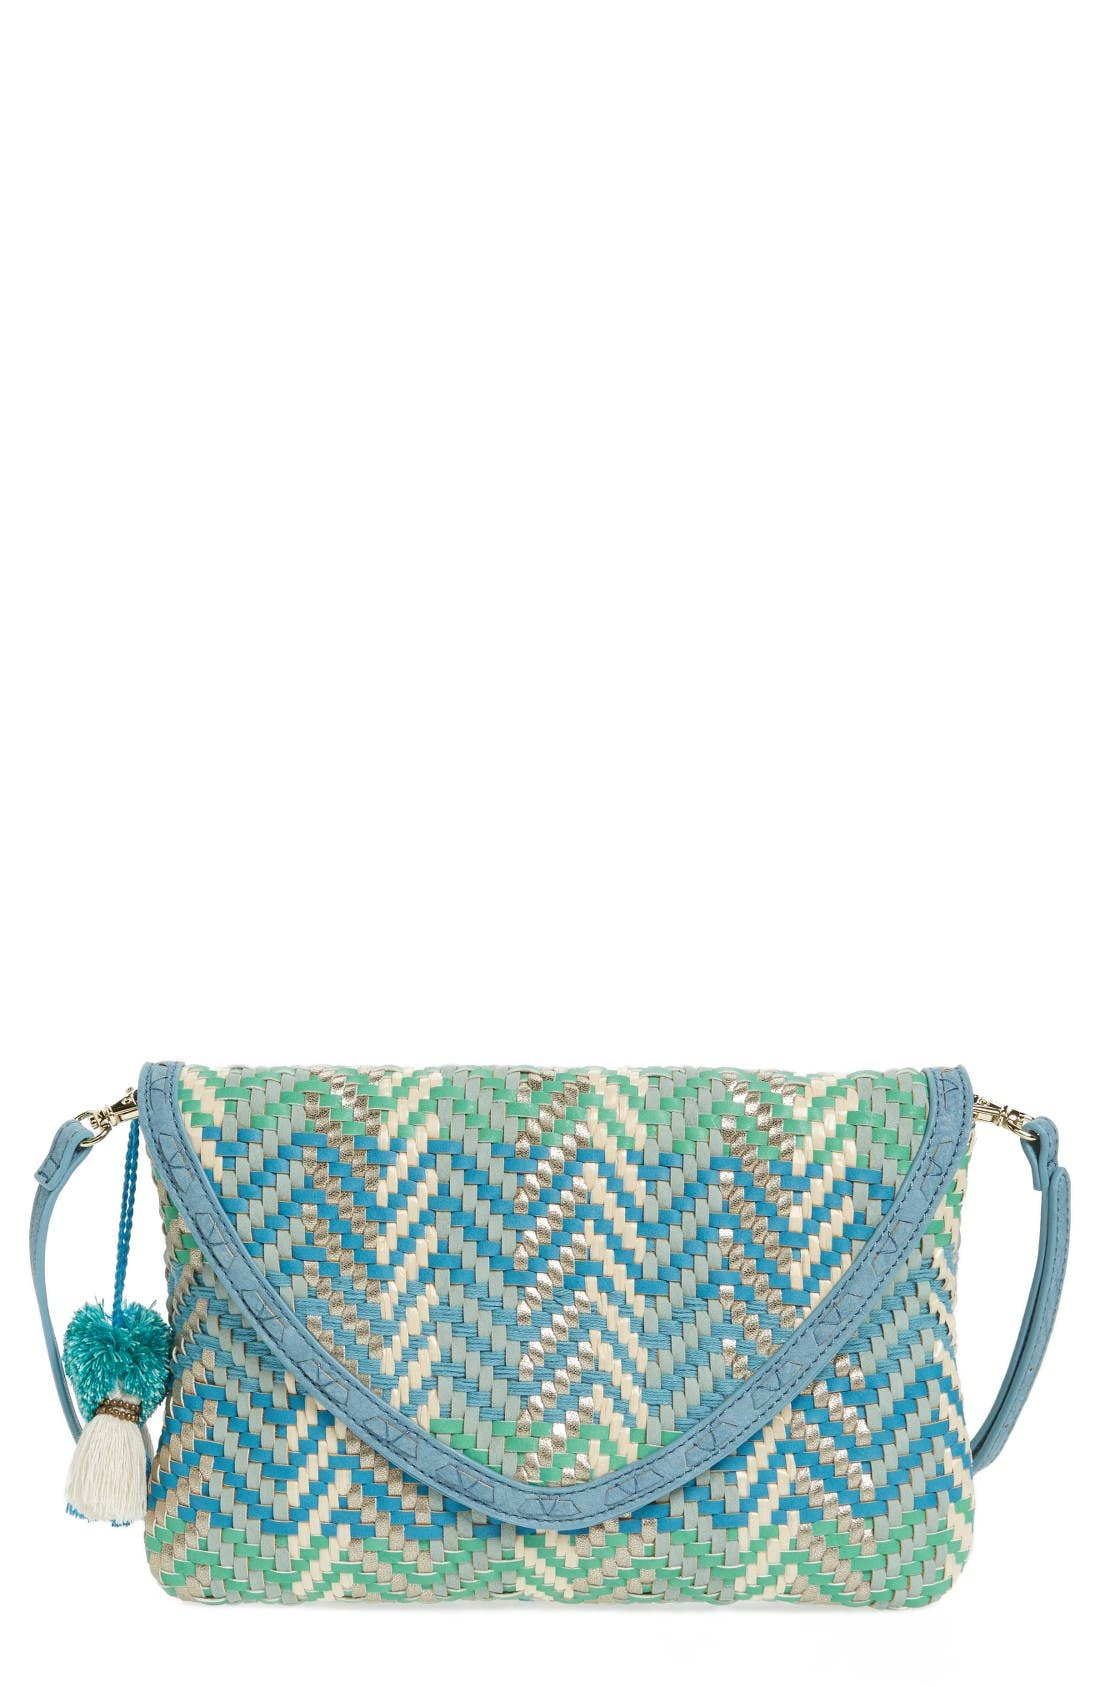 Alternate Image 1 Selected - Steven by Steve Madden Woven Crossbody Bag